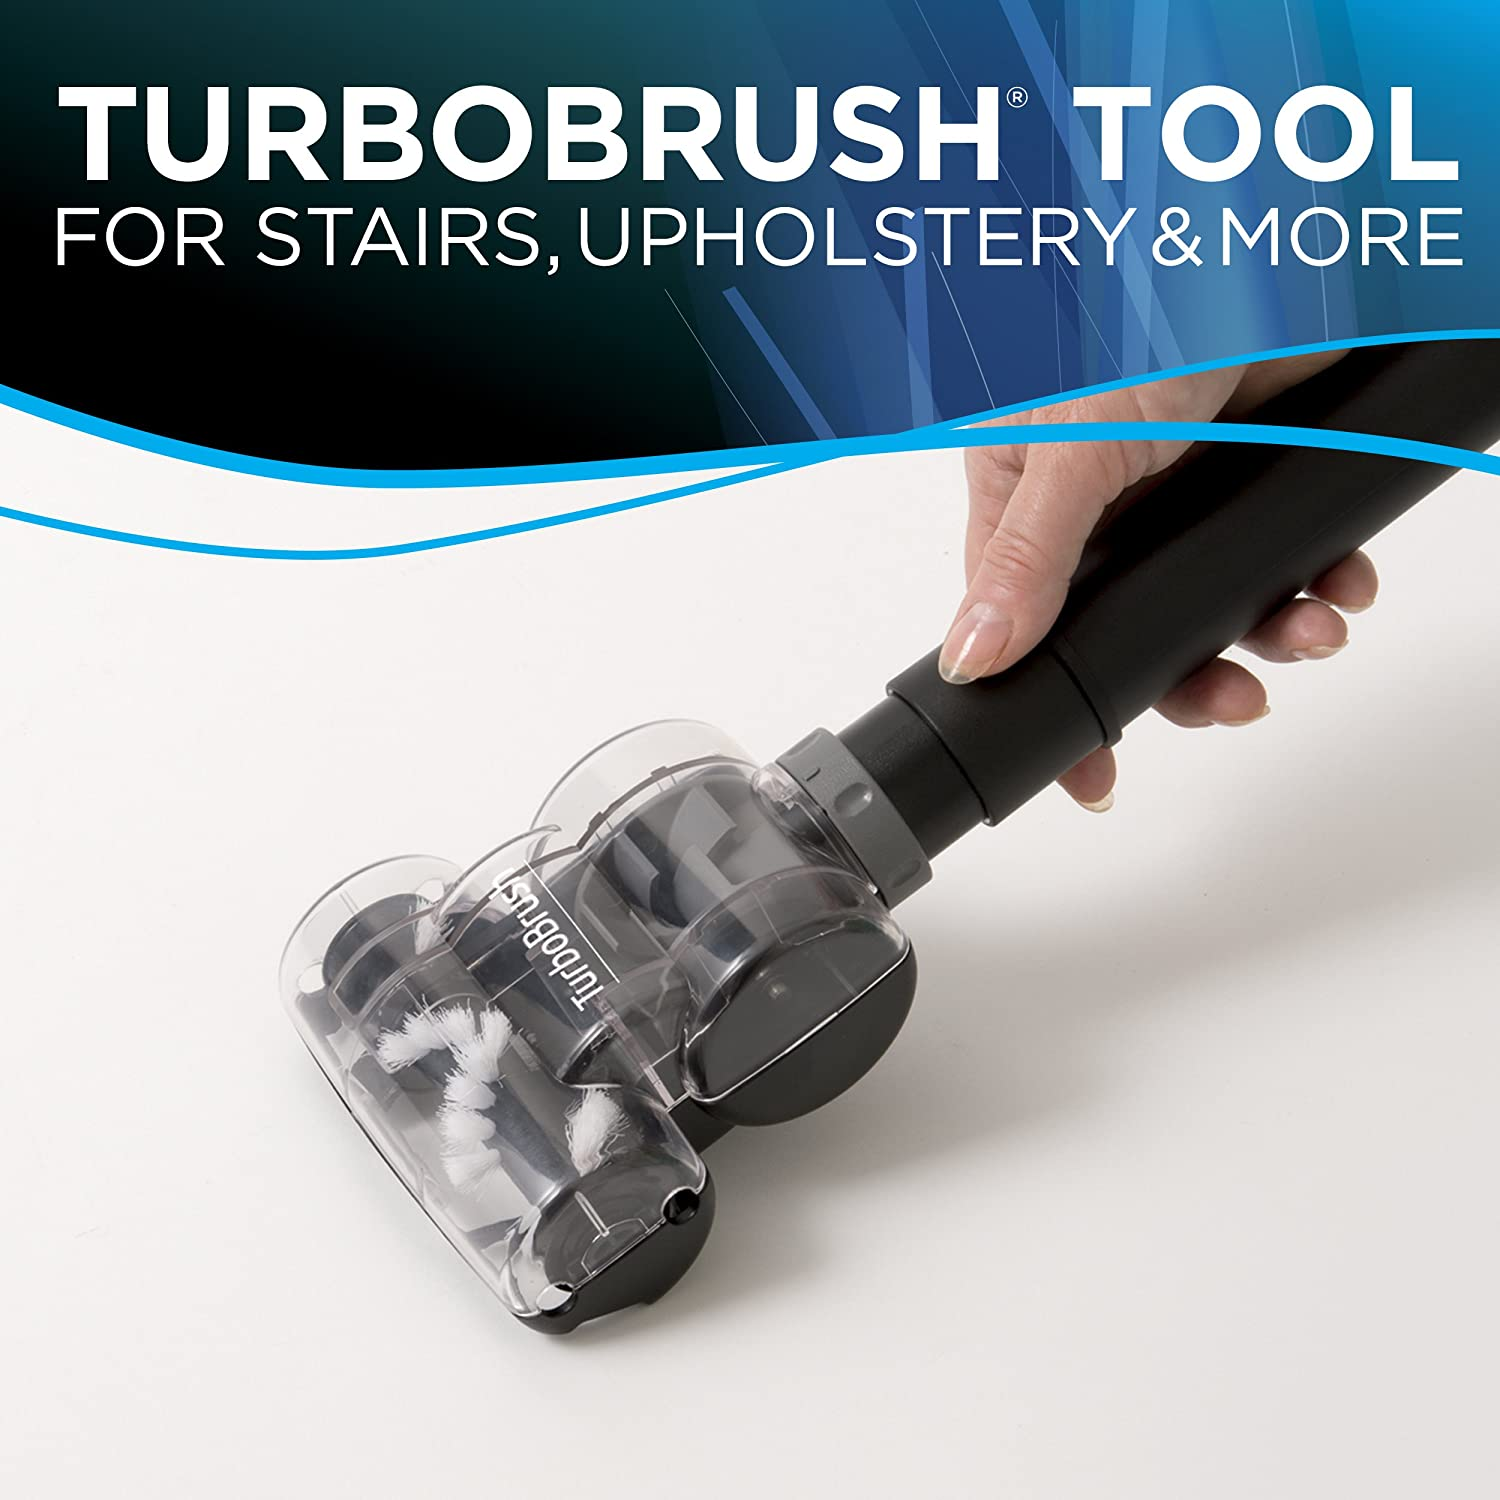 The useful turbobrush tool will work great on the product